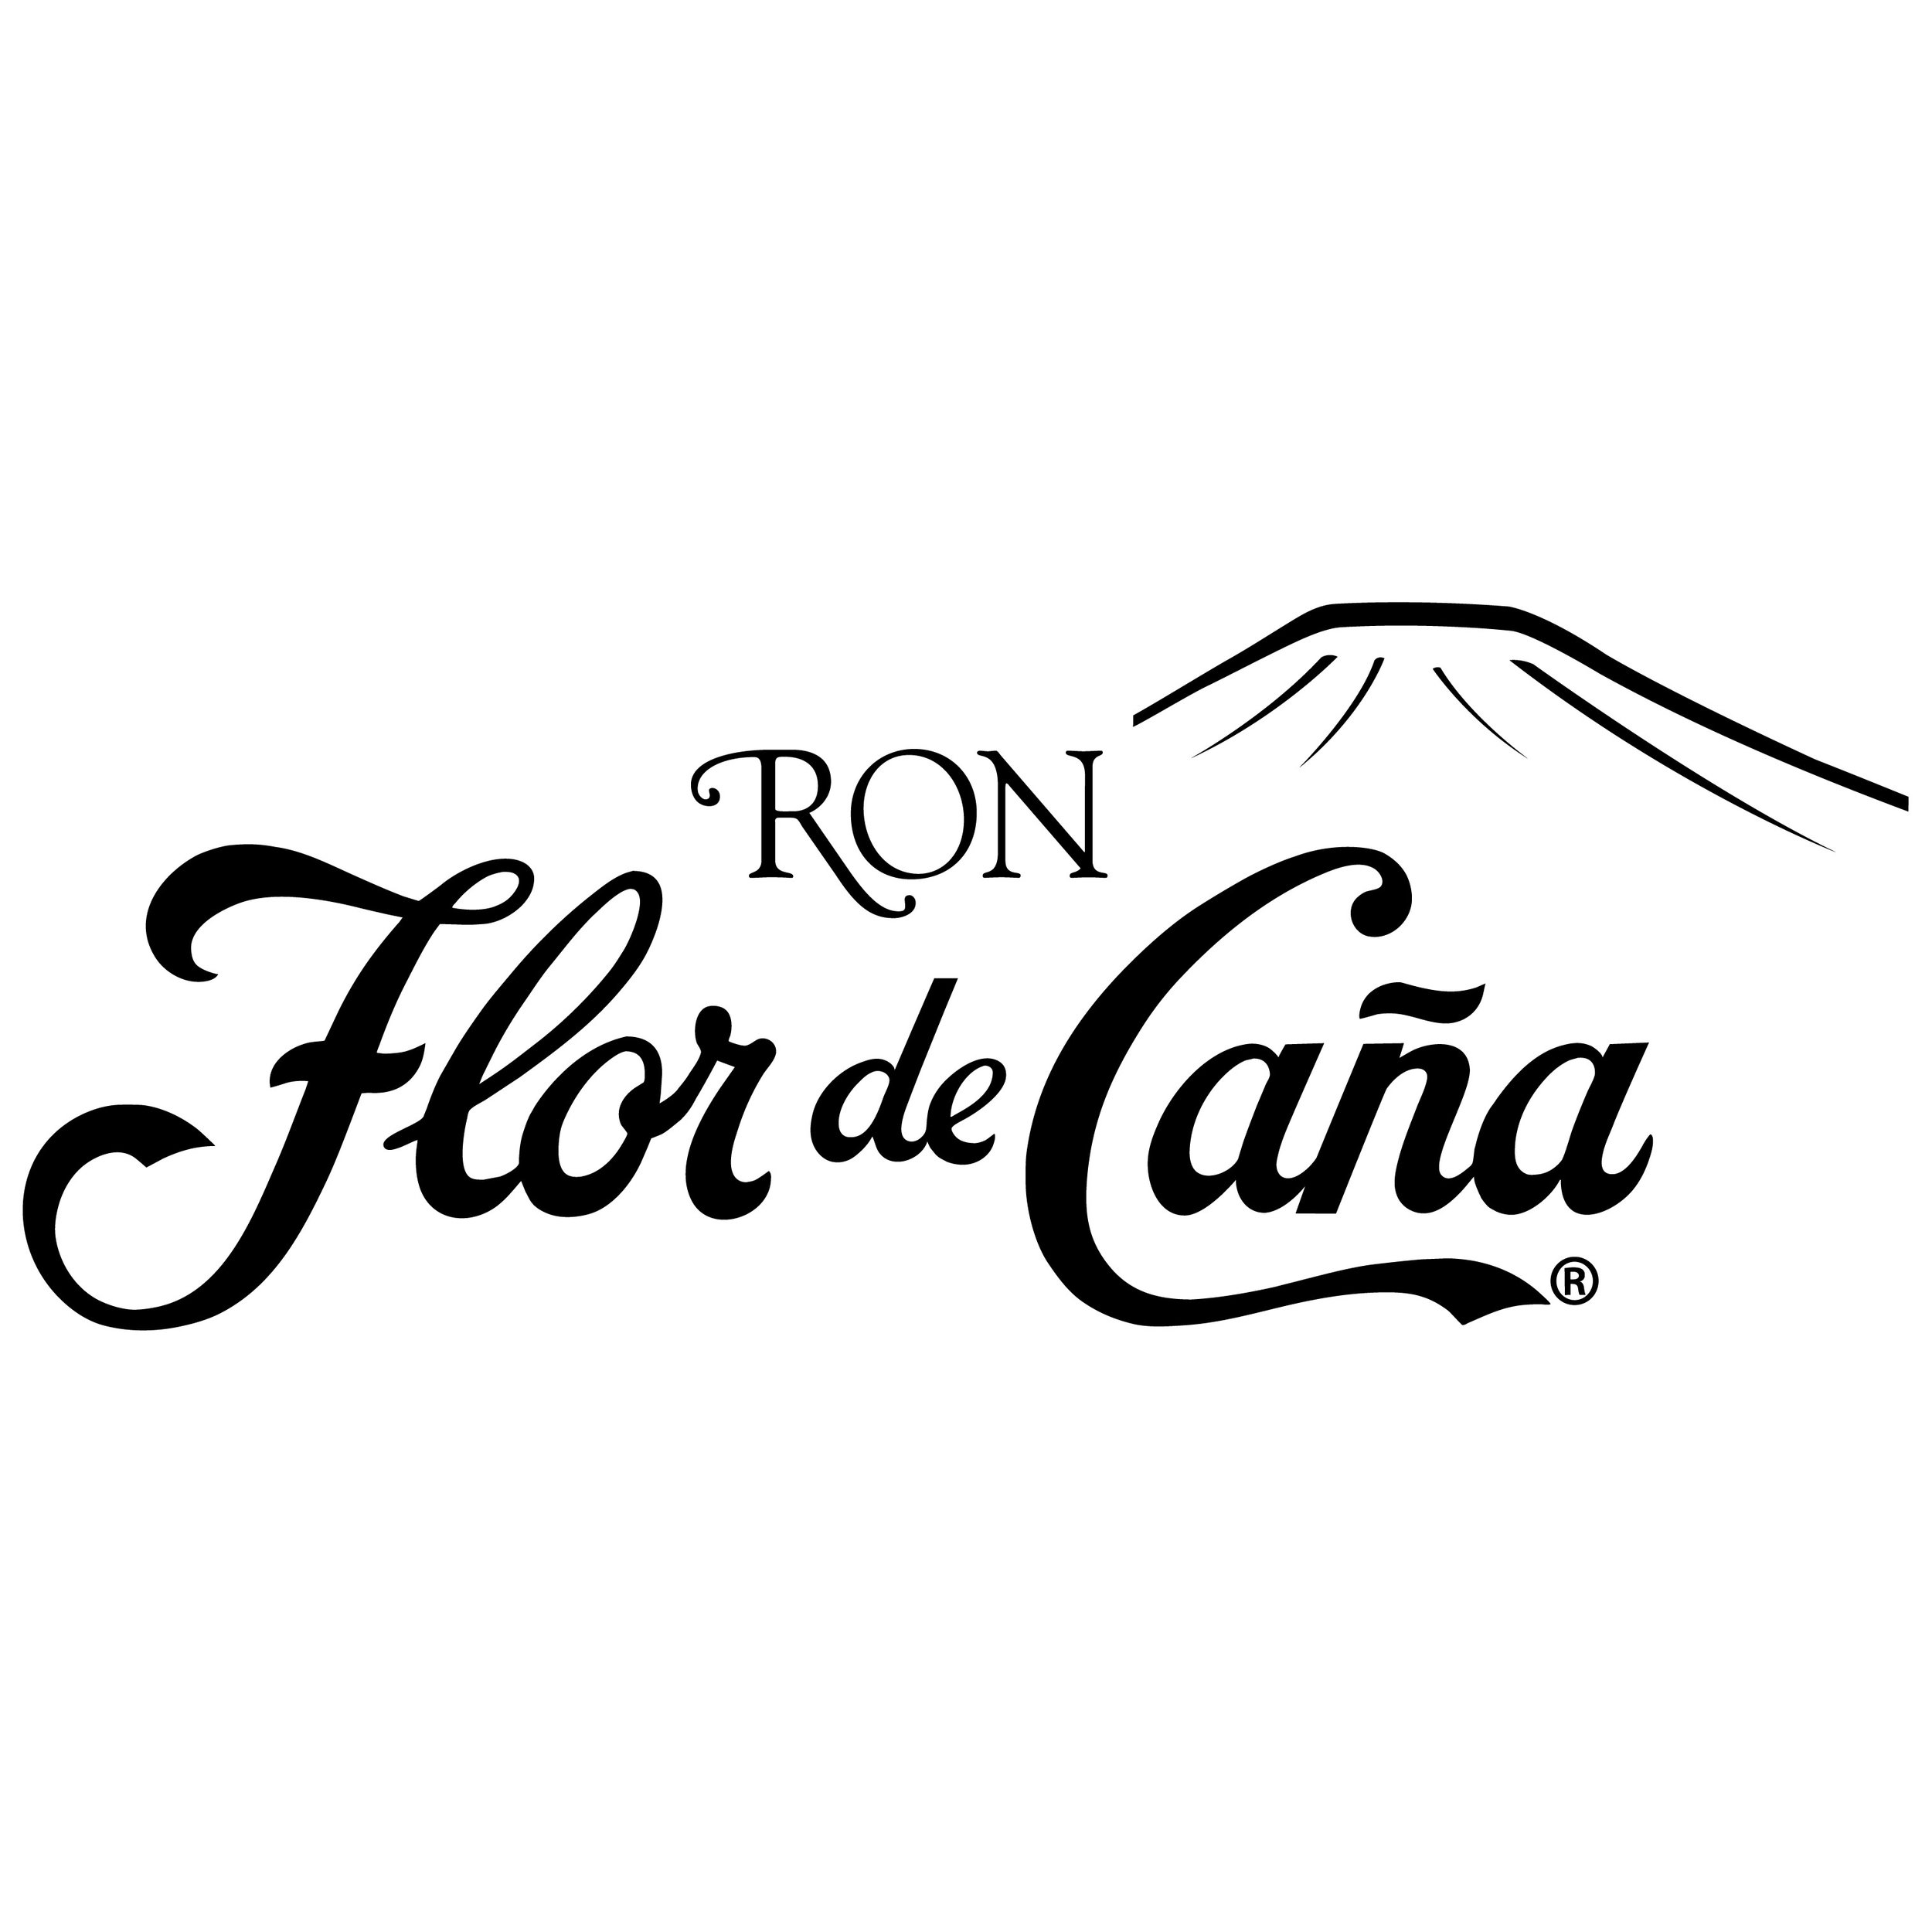 Flor de Caña, Nicaragua's #1 exported brand, is present in over 40 countries in five continents and is one of the fastest growing premium rum brands in the United States. With more than 125 years and 5 generations of family tradition, Flor de Caña has been recognized as the world's best rum in prestigious international competitions in London, San Francisco and Chicago.   http://www.flordecana.com/en/